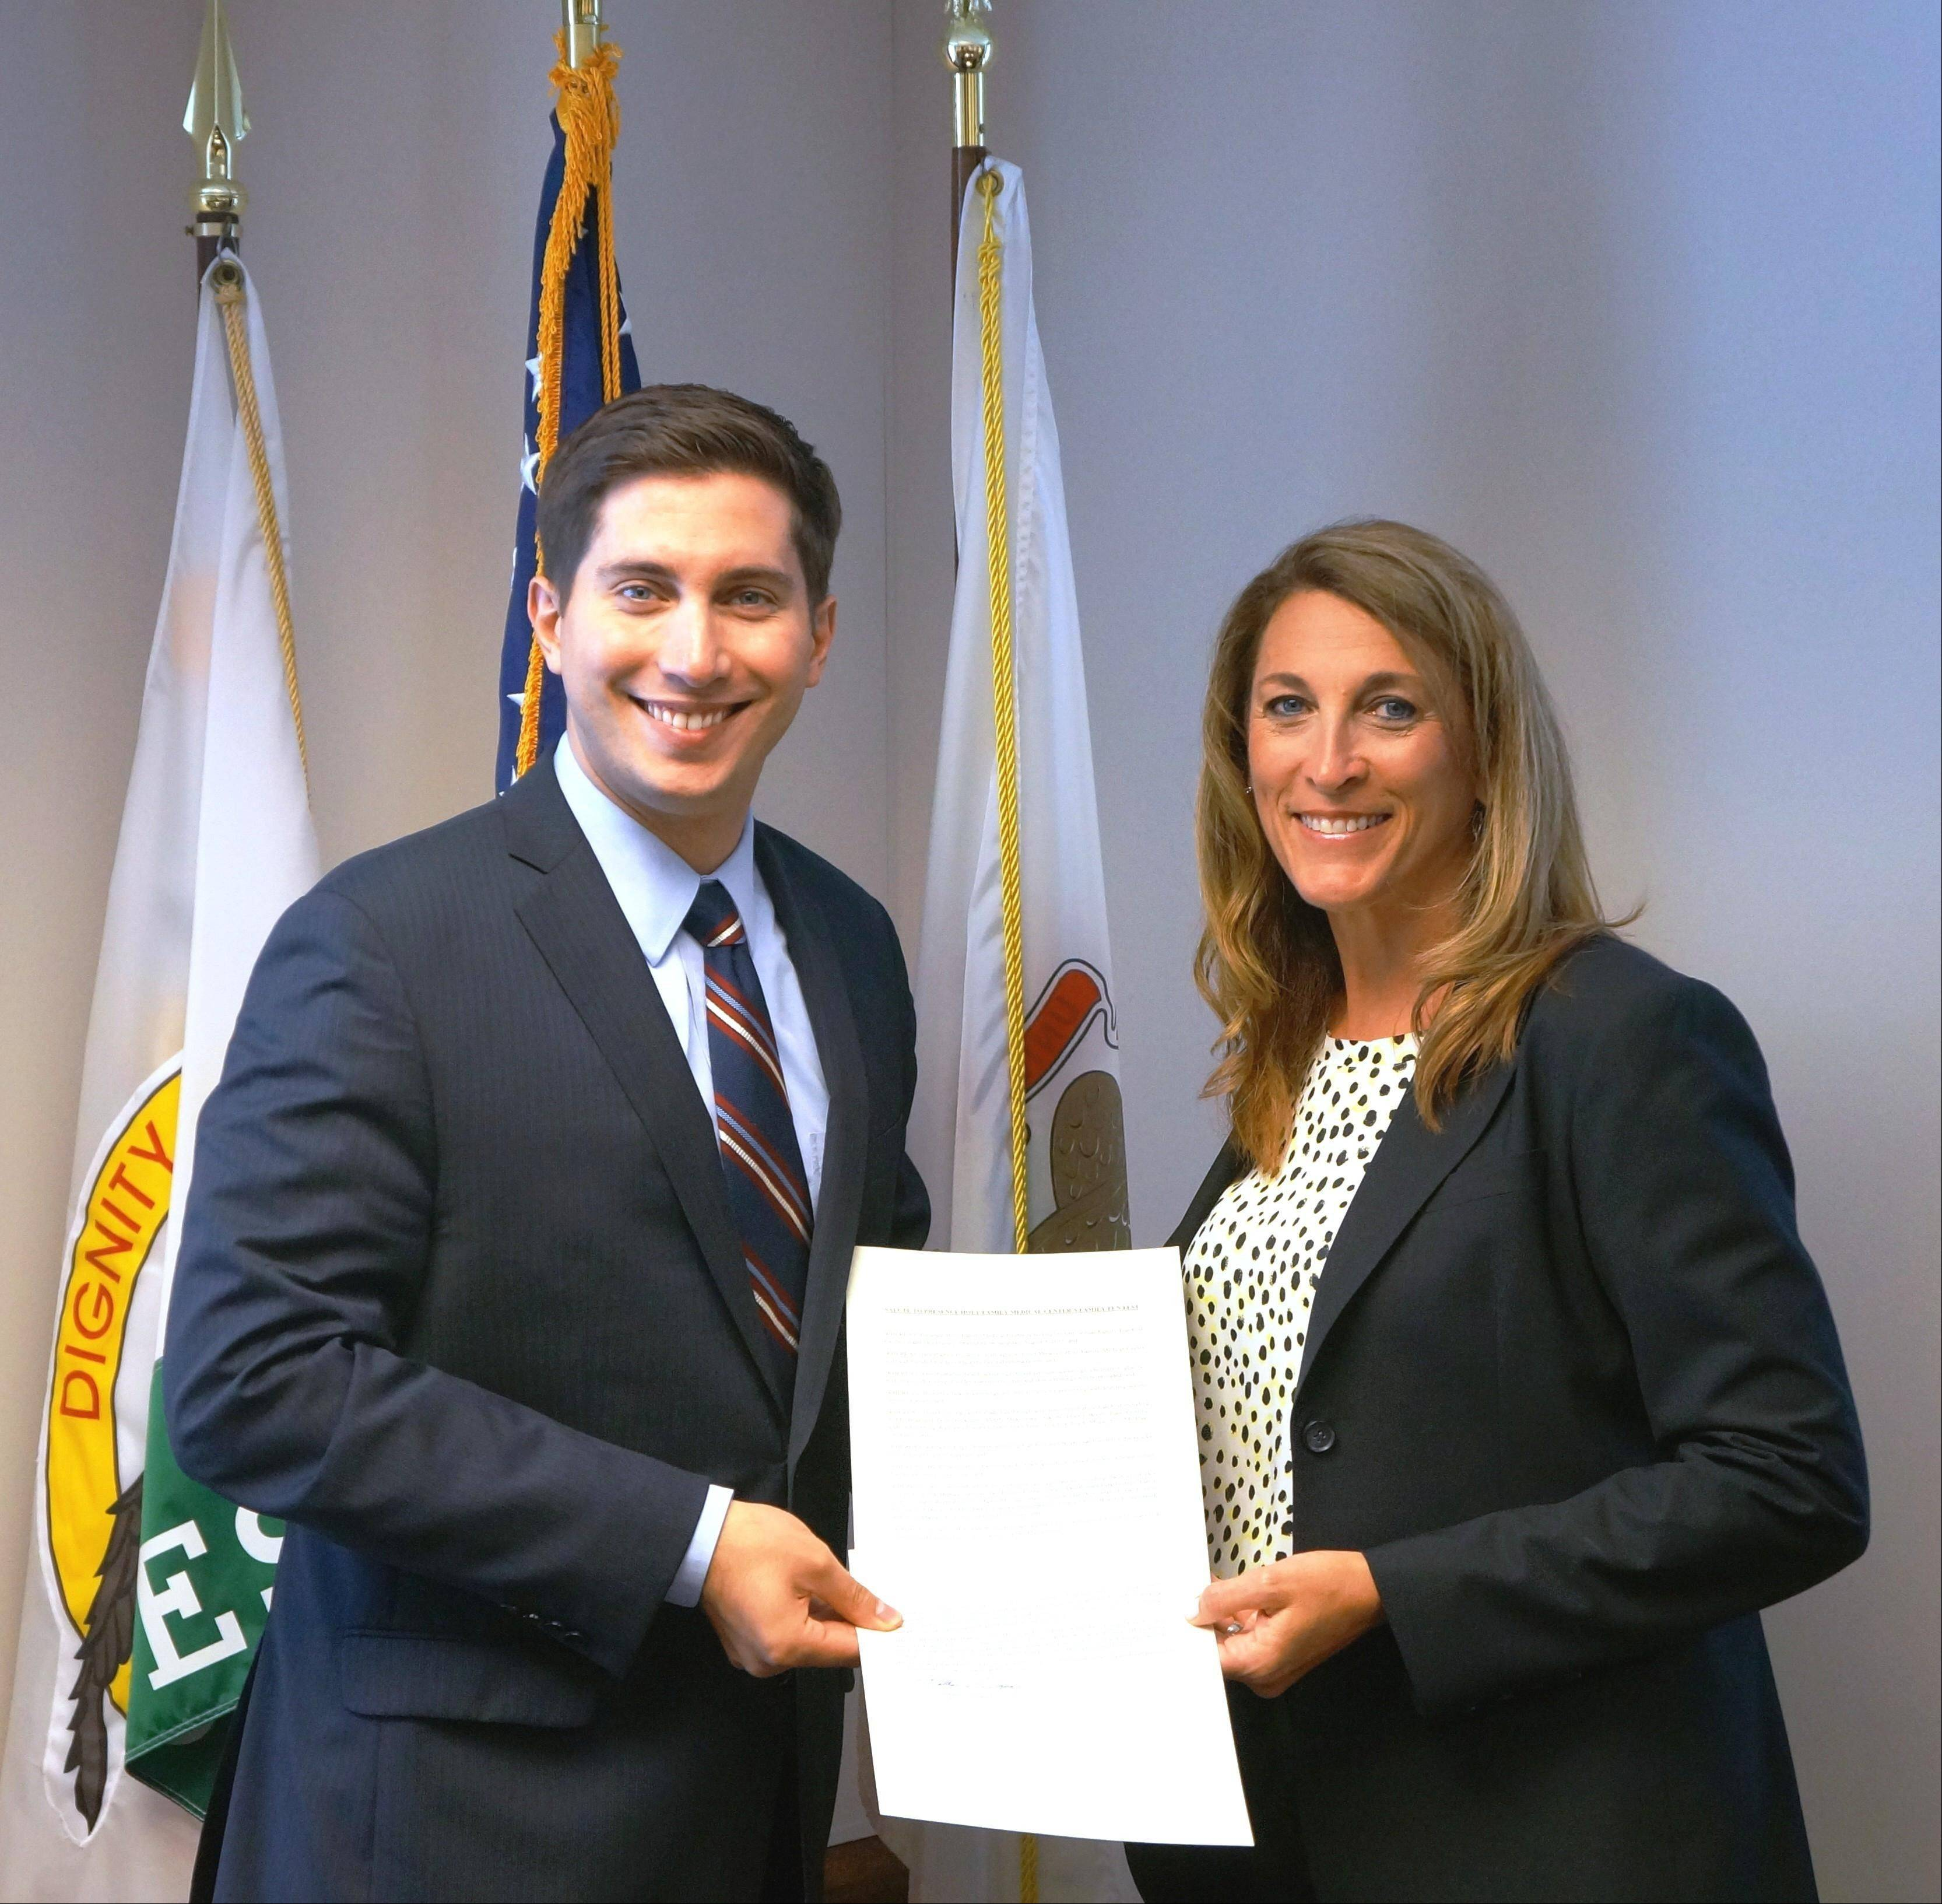 Des Plaines Mayor Matthew Bogusz officially proclaimed Saturday, Aug. 3, Presence Holy Family Fun Fest Day in Des Plaines, by presenting an official proclamation to Holy Family CEO Pam Bell.